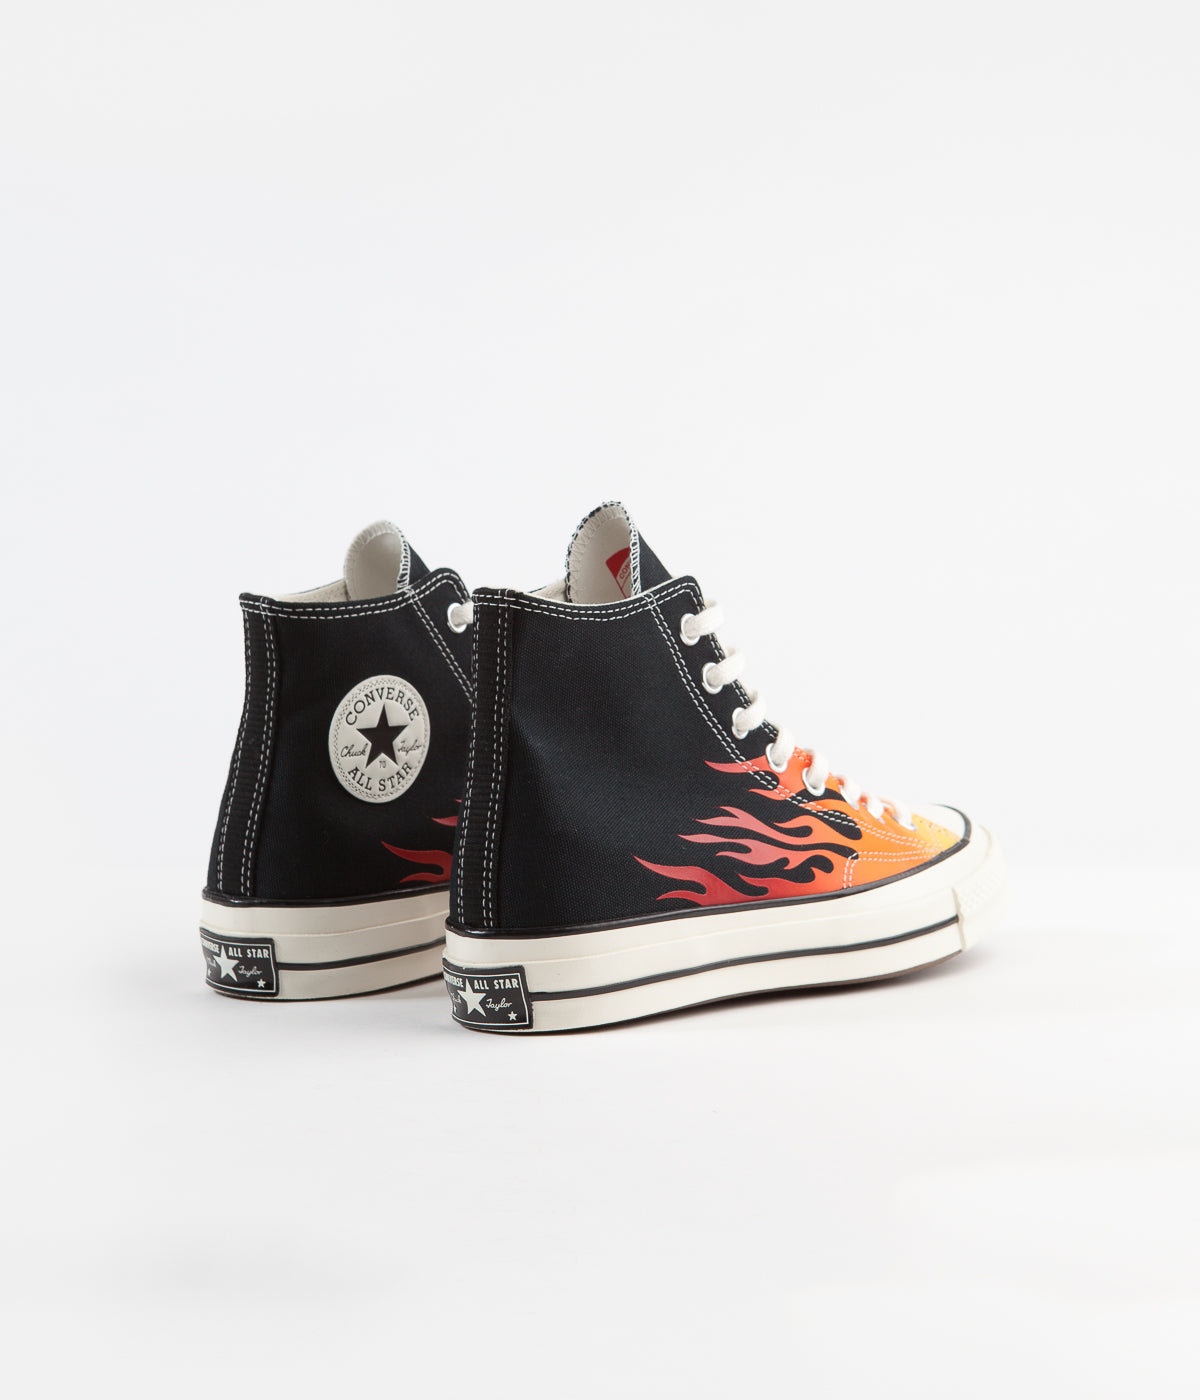 Converse CTAS 70's Hi Archive Print Remixed Shoes - Black / Enamel Red / Bold Mandarin